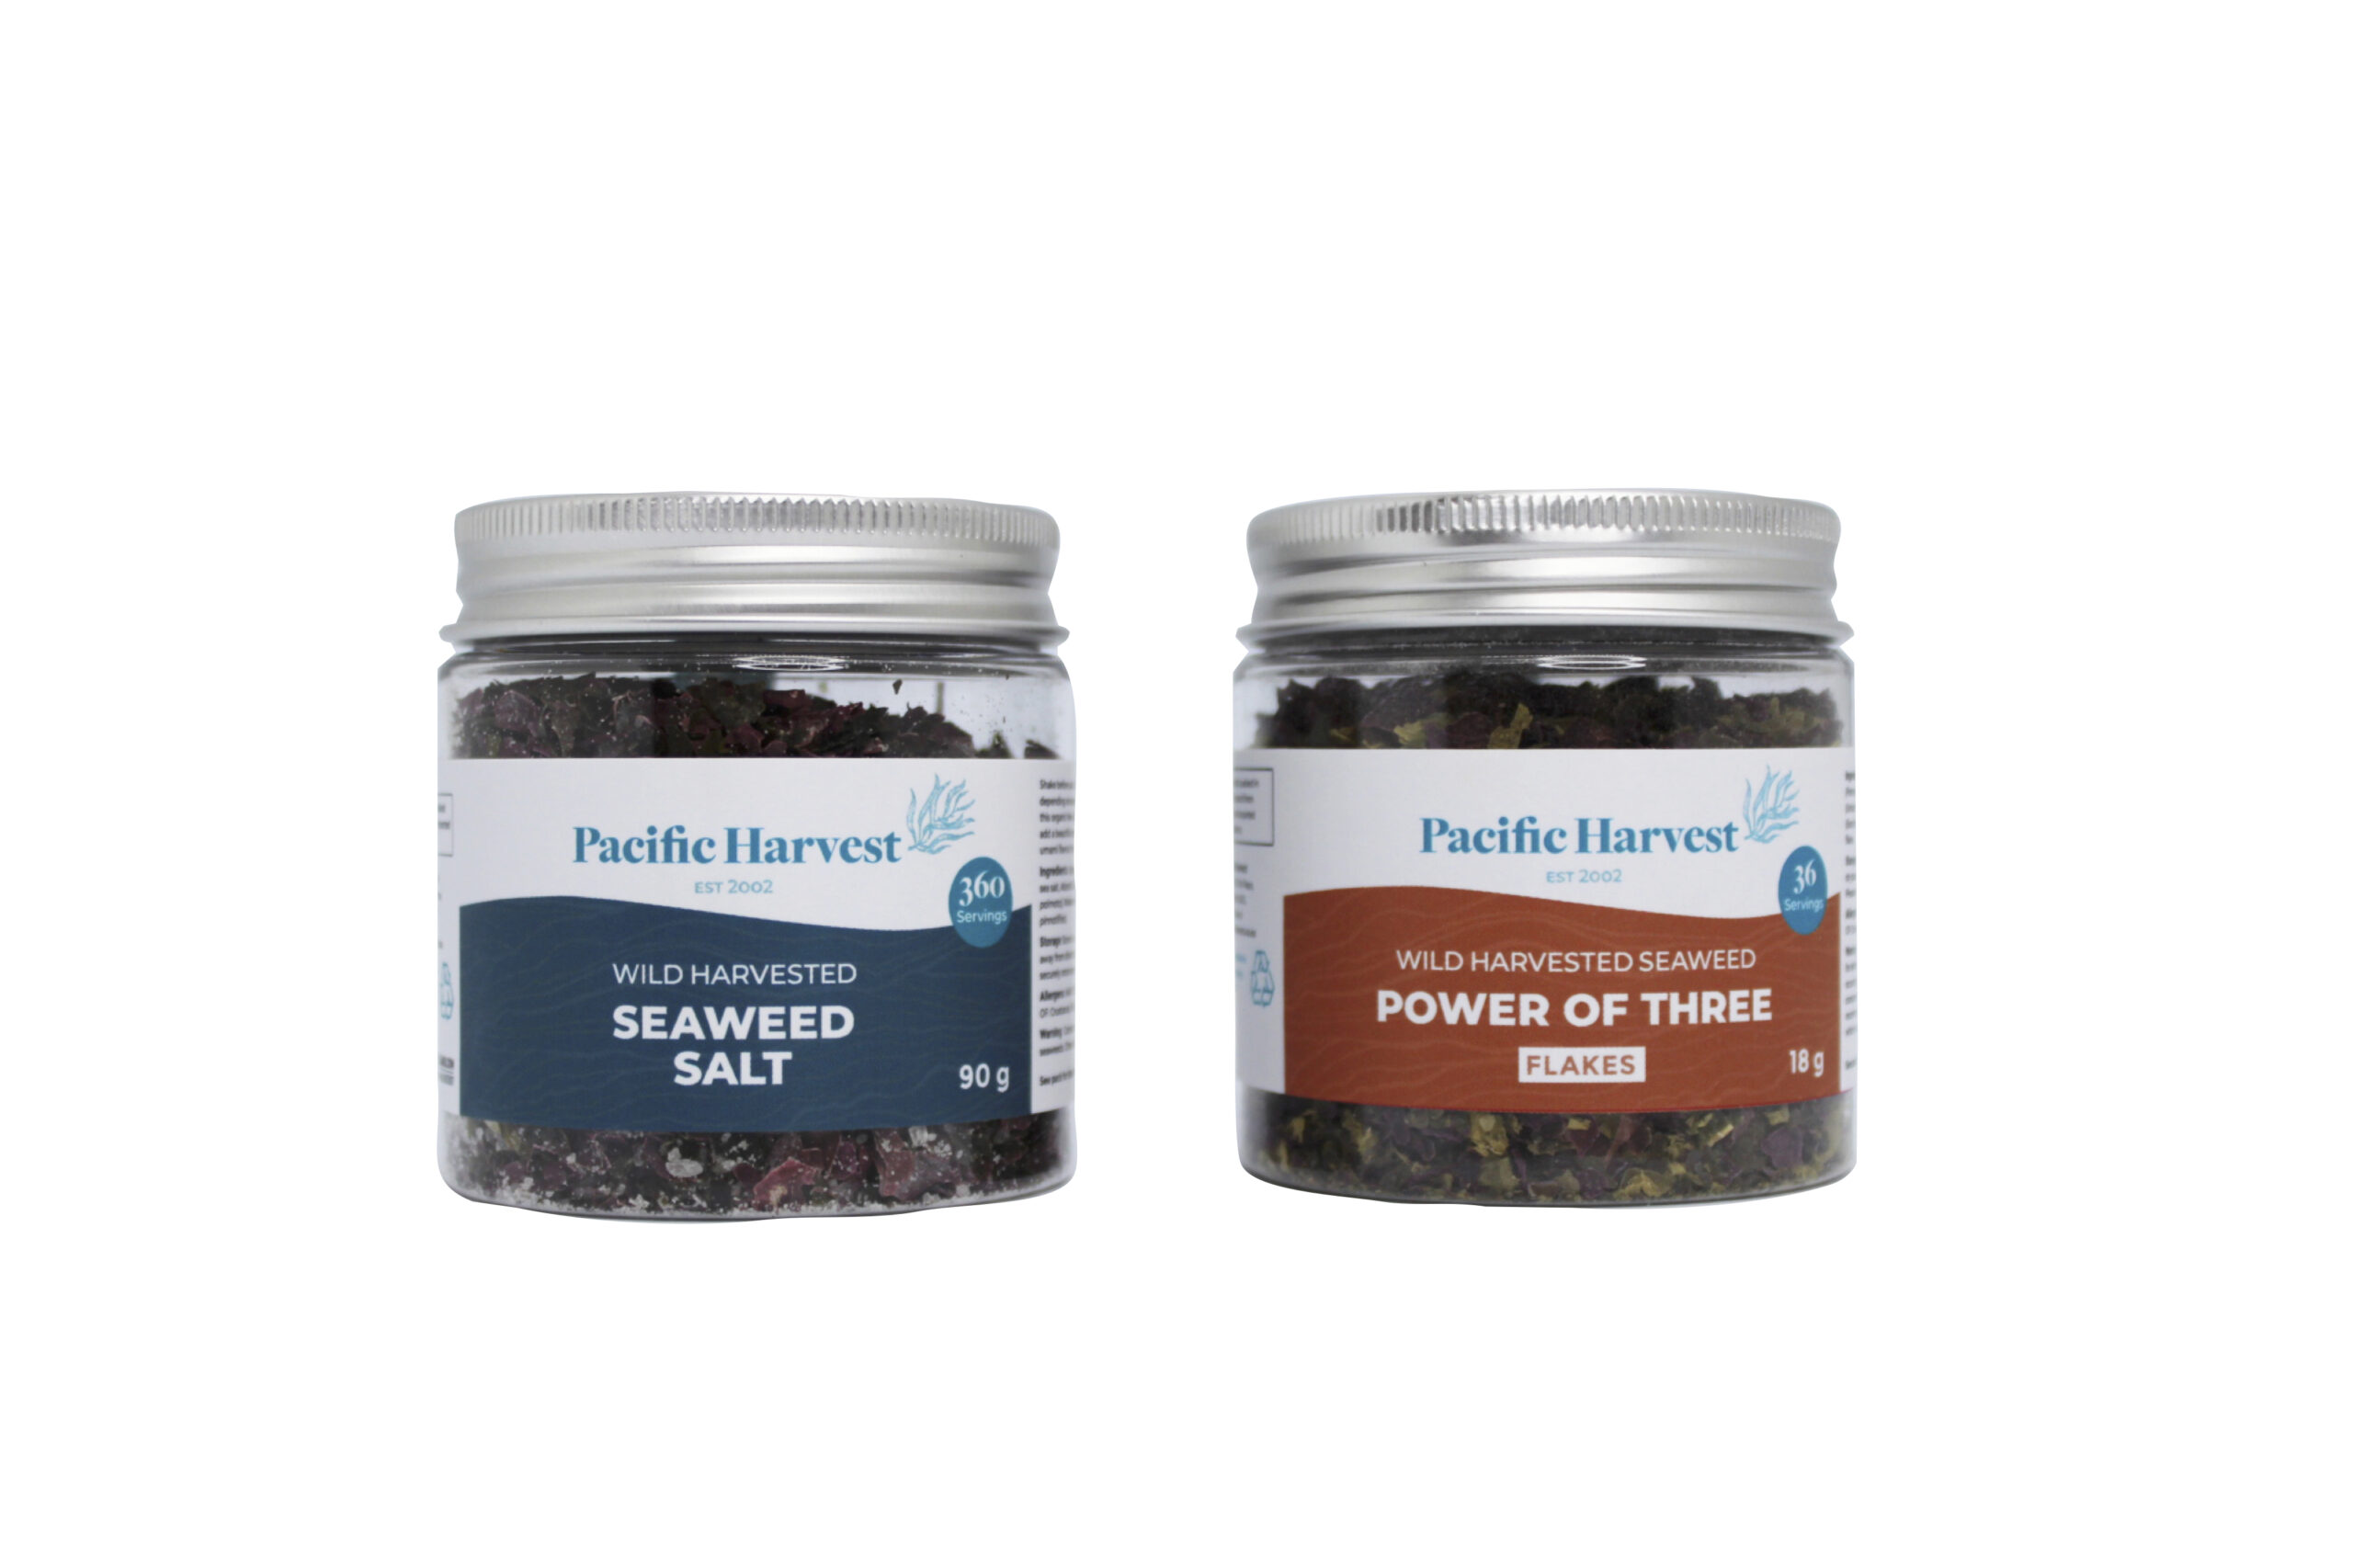 Pacific Harvest Products